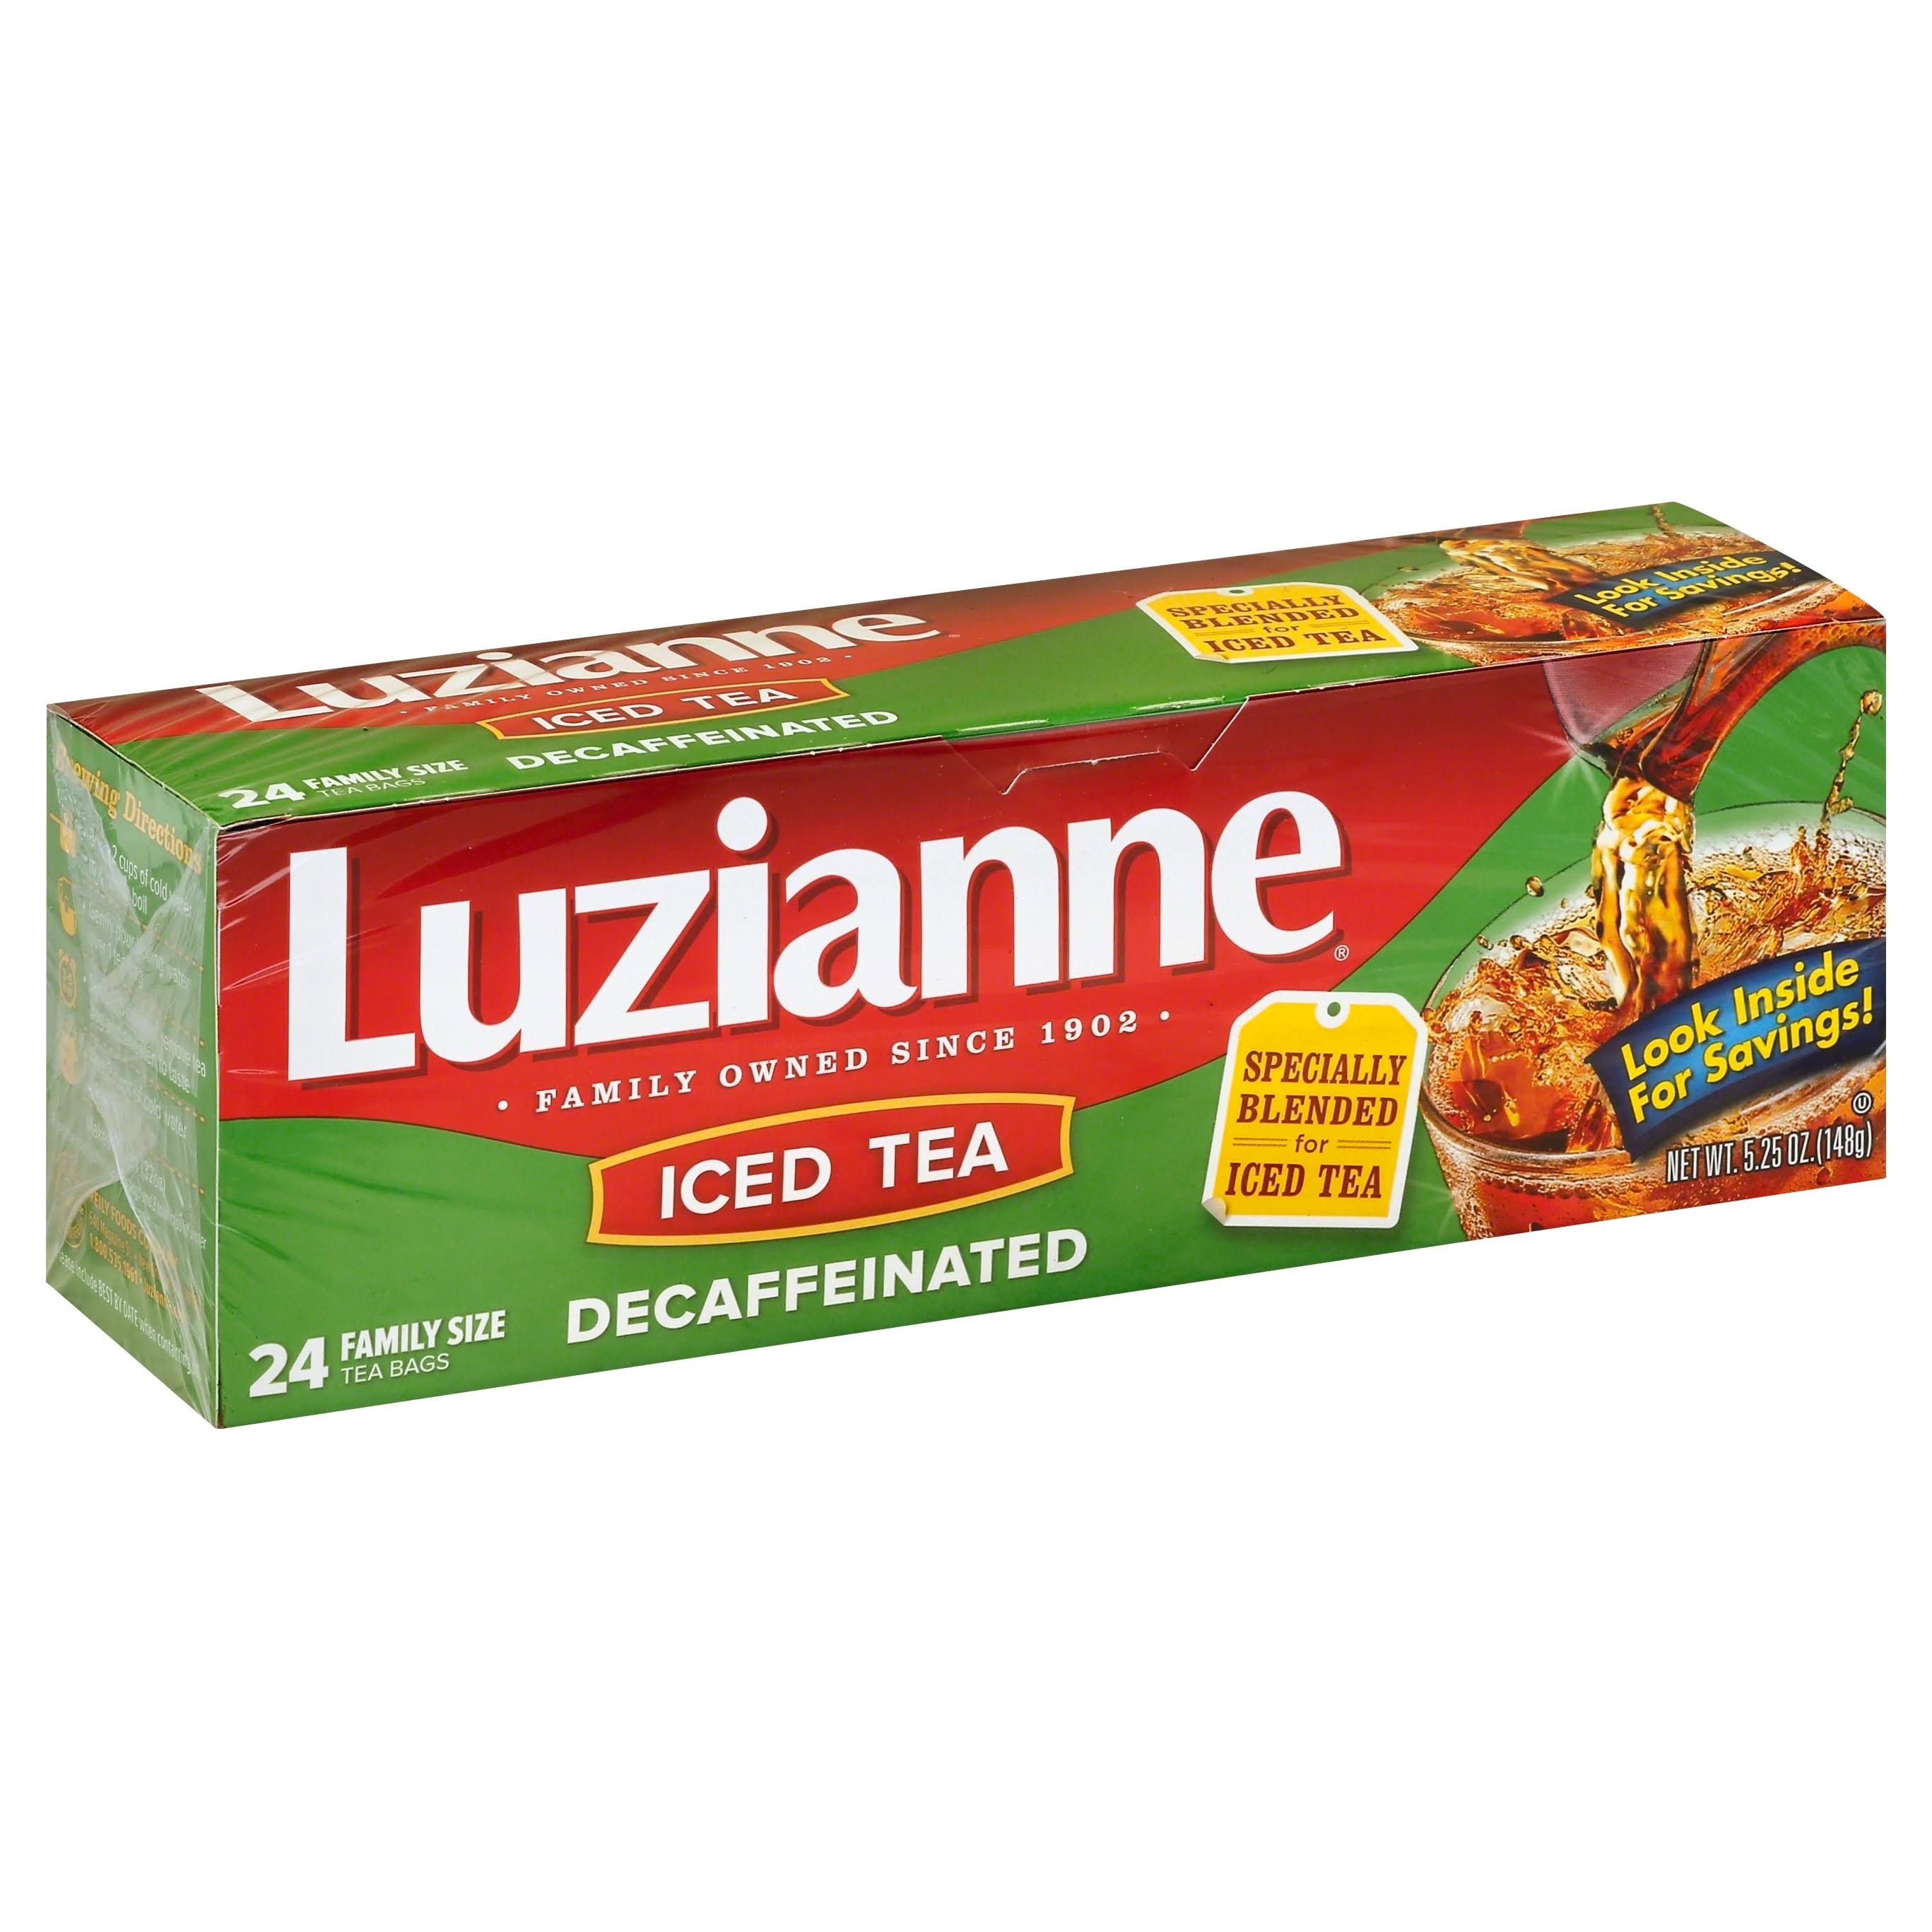 Luzianne Decaffeinated Iced Tea - Family Size, 24ct, 5.25oz